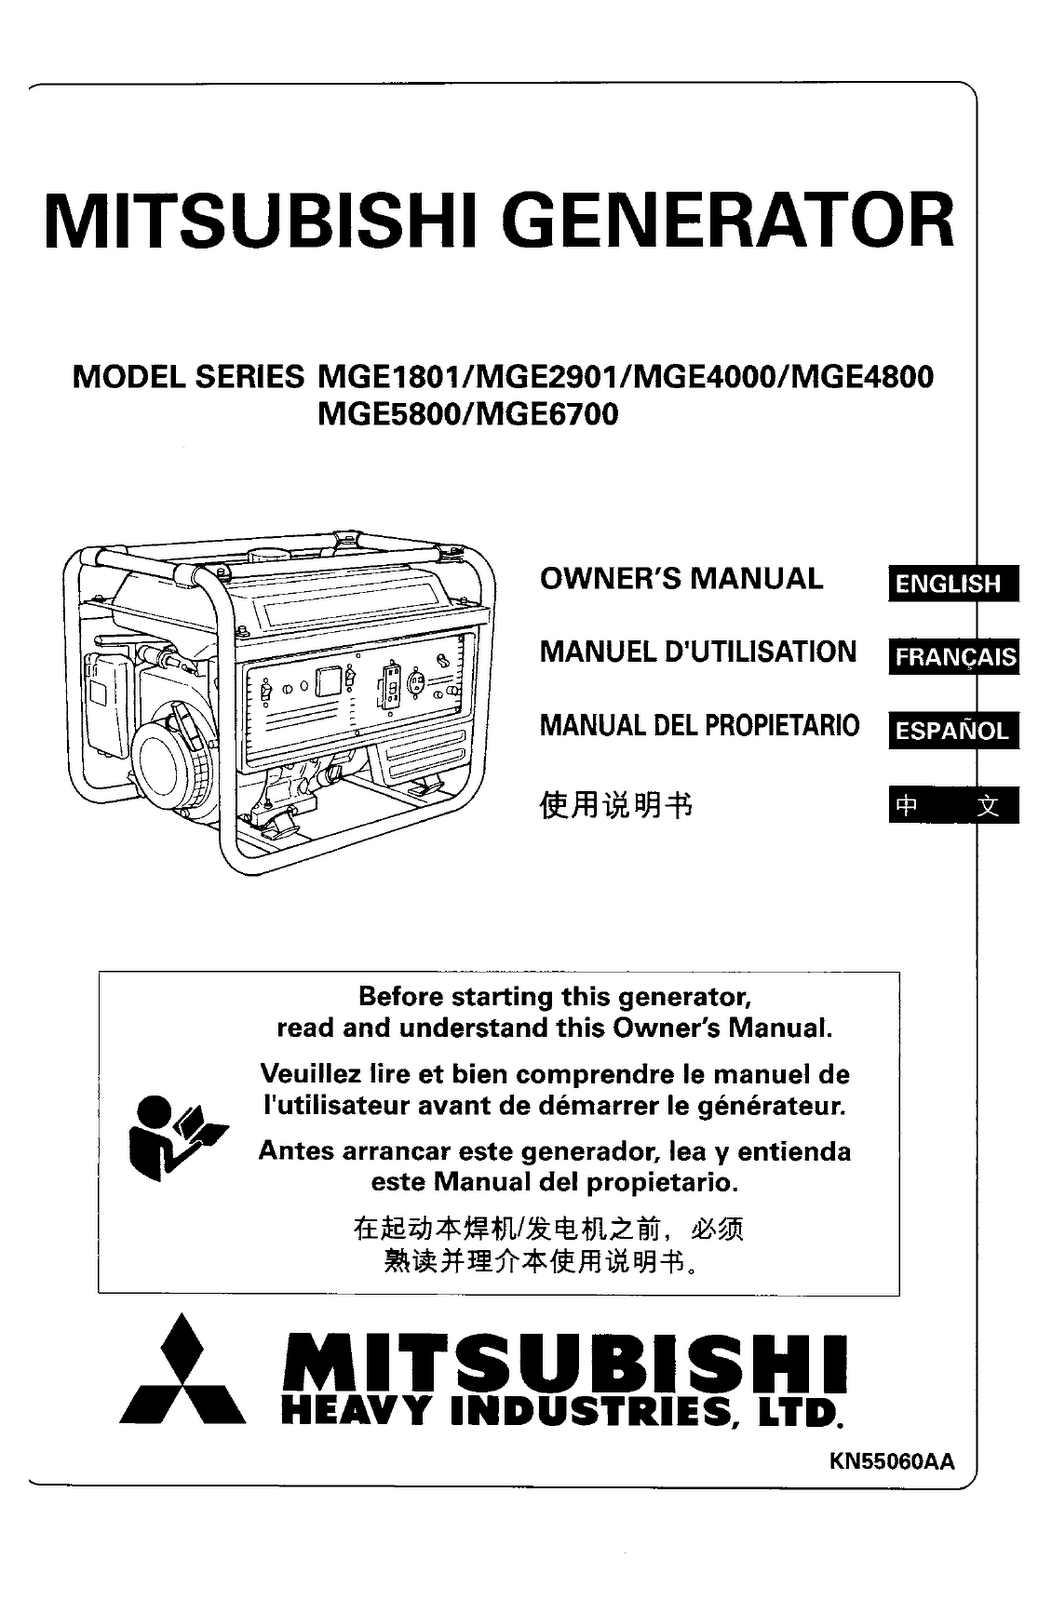 Before starting this generator, read and understand this Owner's Manual.  Veuillez lire et bien comprendre le manuel de I'utì|isateur avant de  démarrer le ...